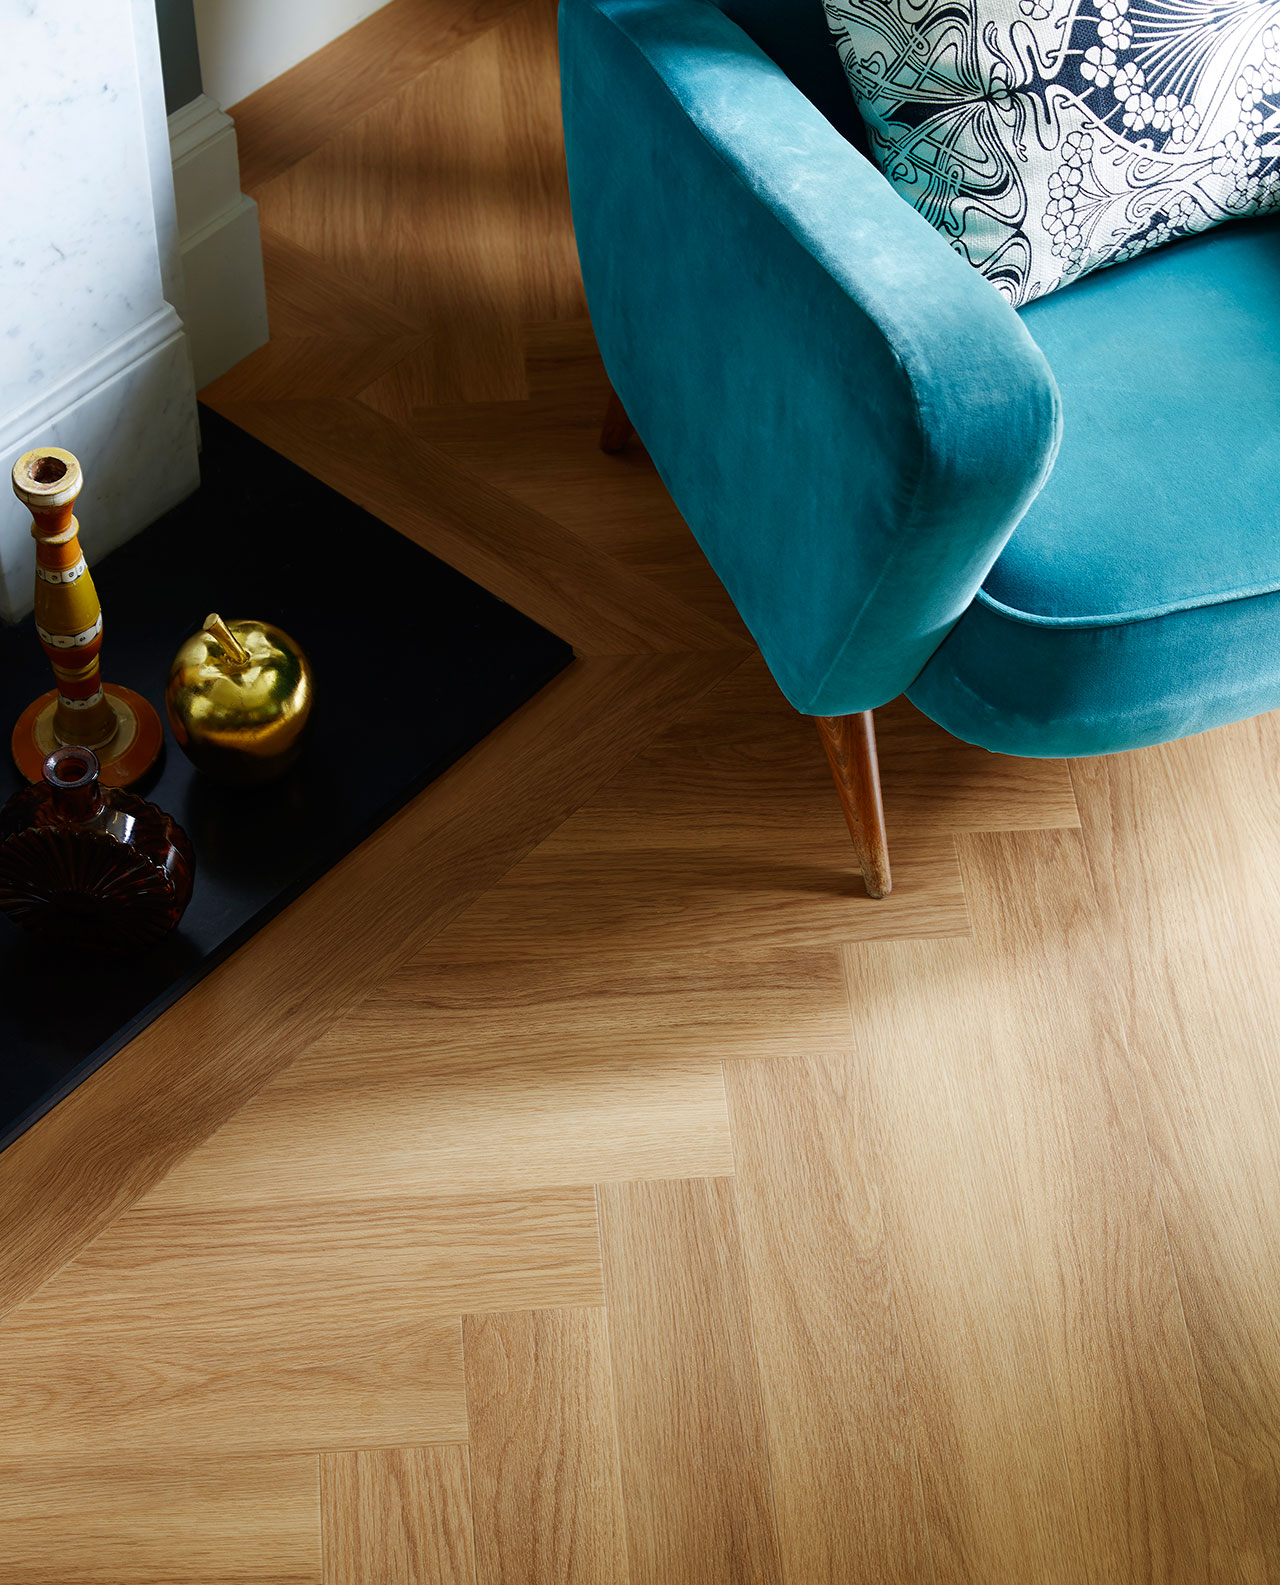 Amtico Spacia LVT in Honey Oak (SS5W2504) in Large Jumbo Herringbone Laying Pattern